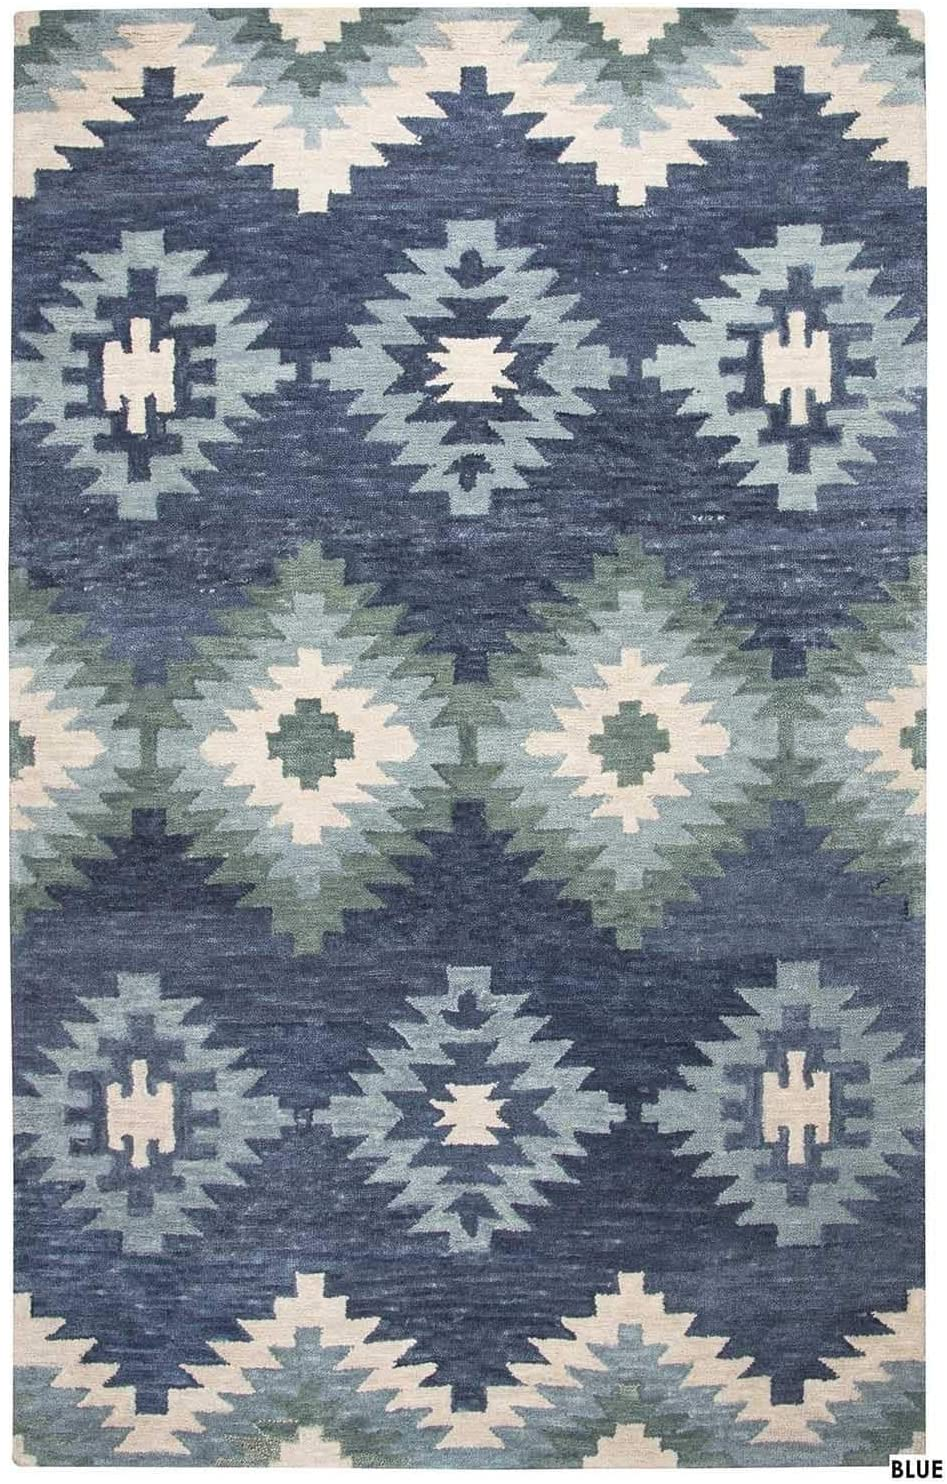 Rizzy Home Napoli Collection Southwestern Motif Rug Blue 8' x 10' Contains Latex Wool, Cotton Geometric 0.25-0.5 inch Stain Resistant, Handmade 8' x